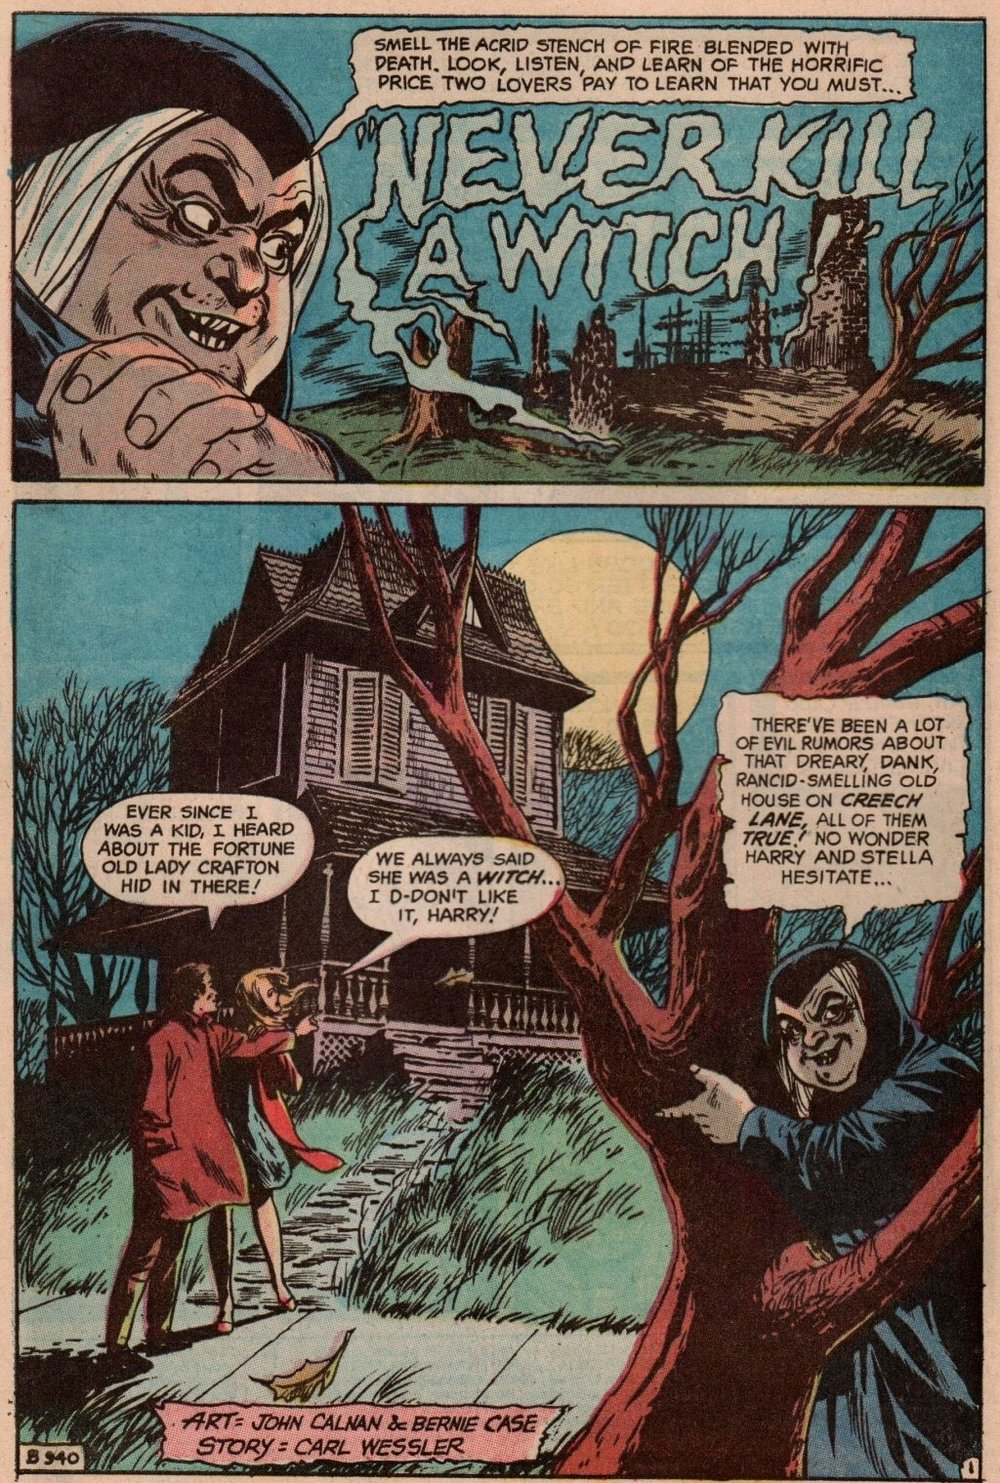 Witching Hour (1969) #16 pg2, penciled by John Calnan & inked by Bernie Case.